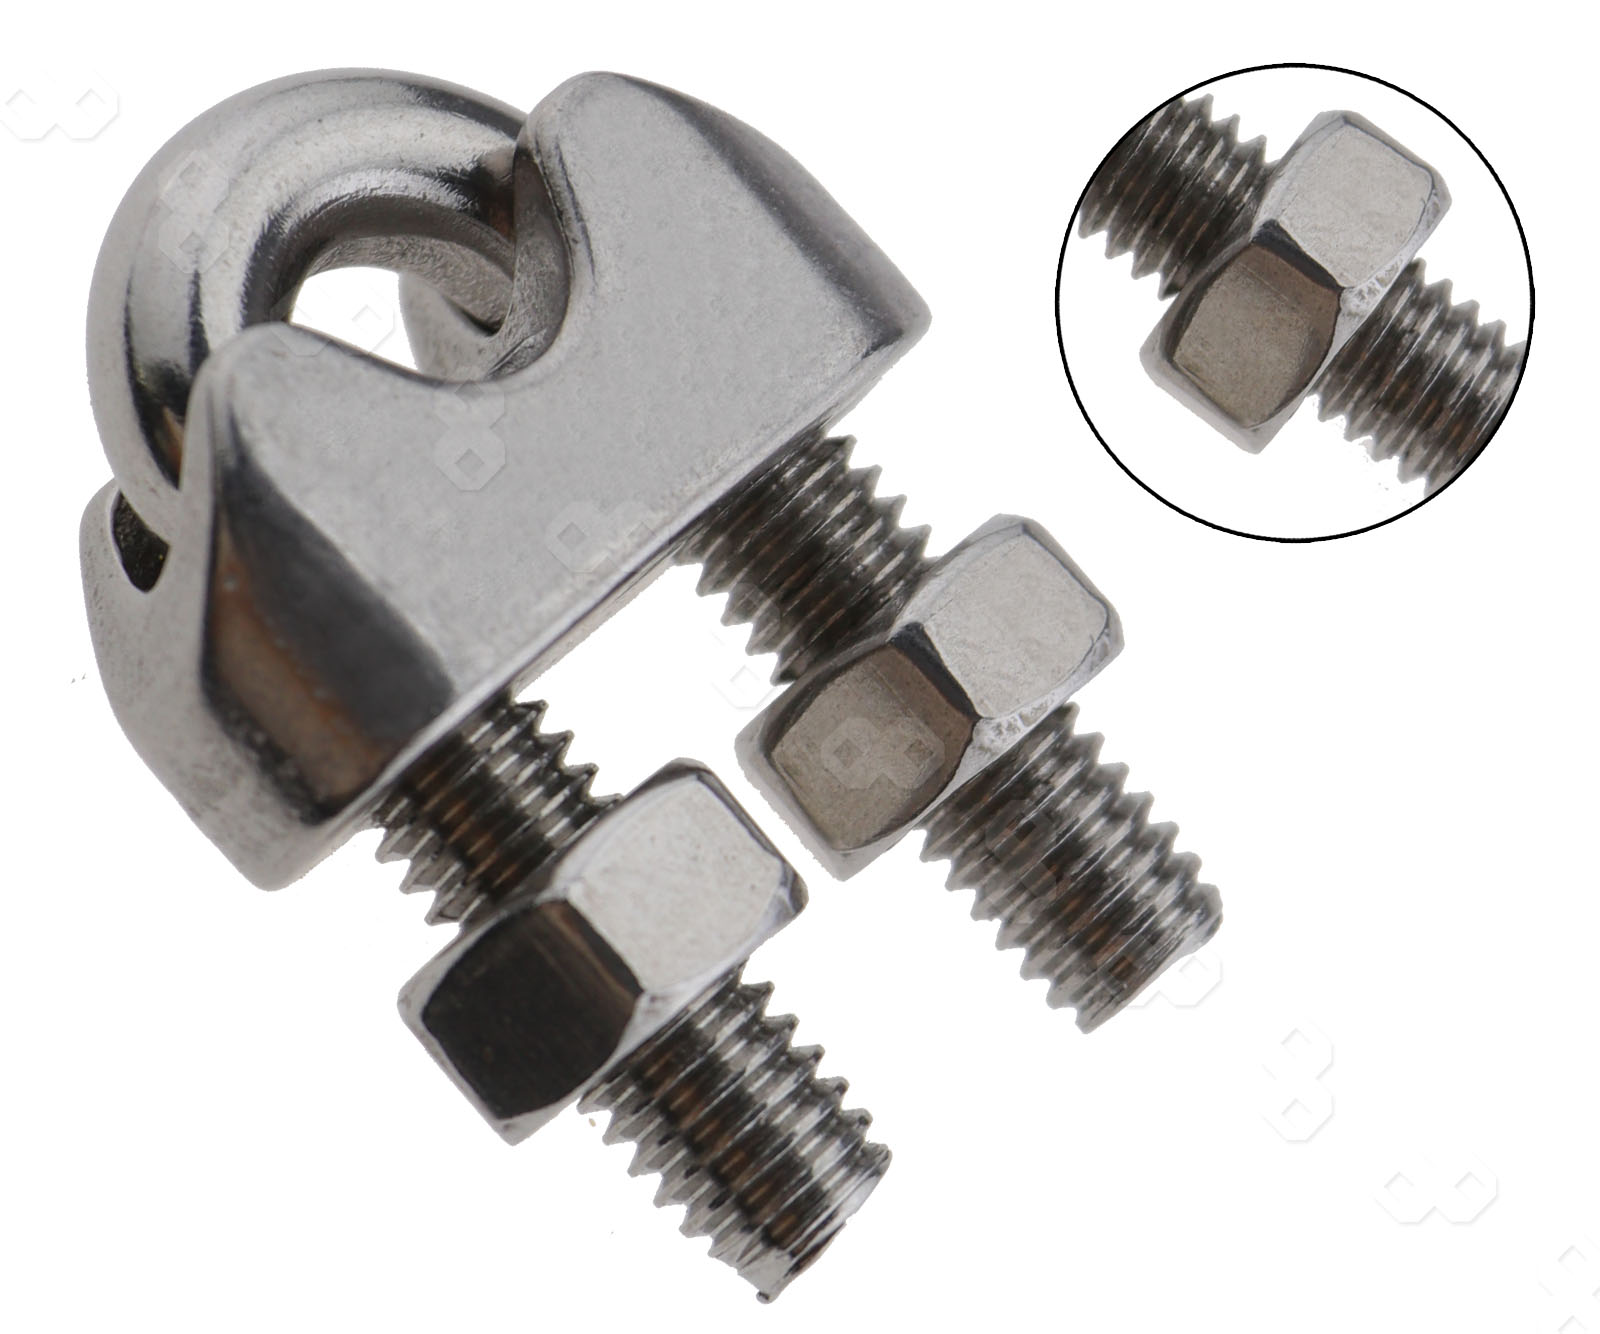 Pcs mm wire rope clip stainless steel cable saddle